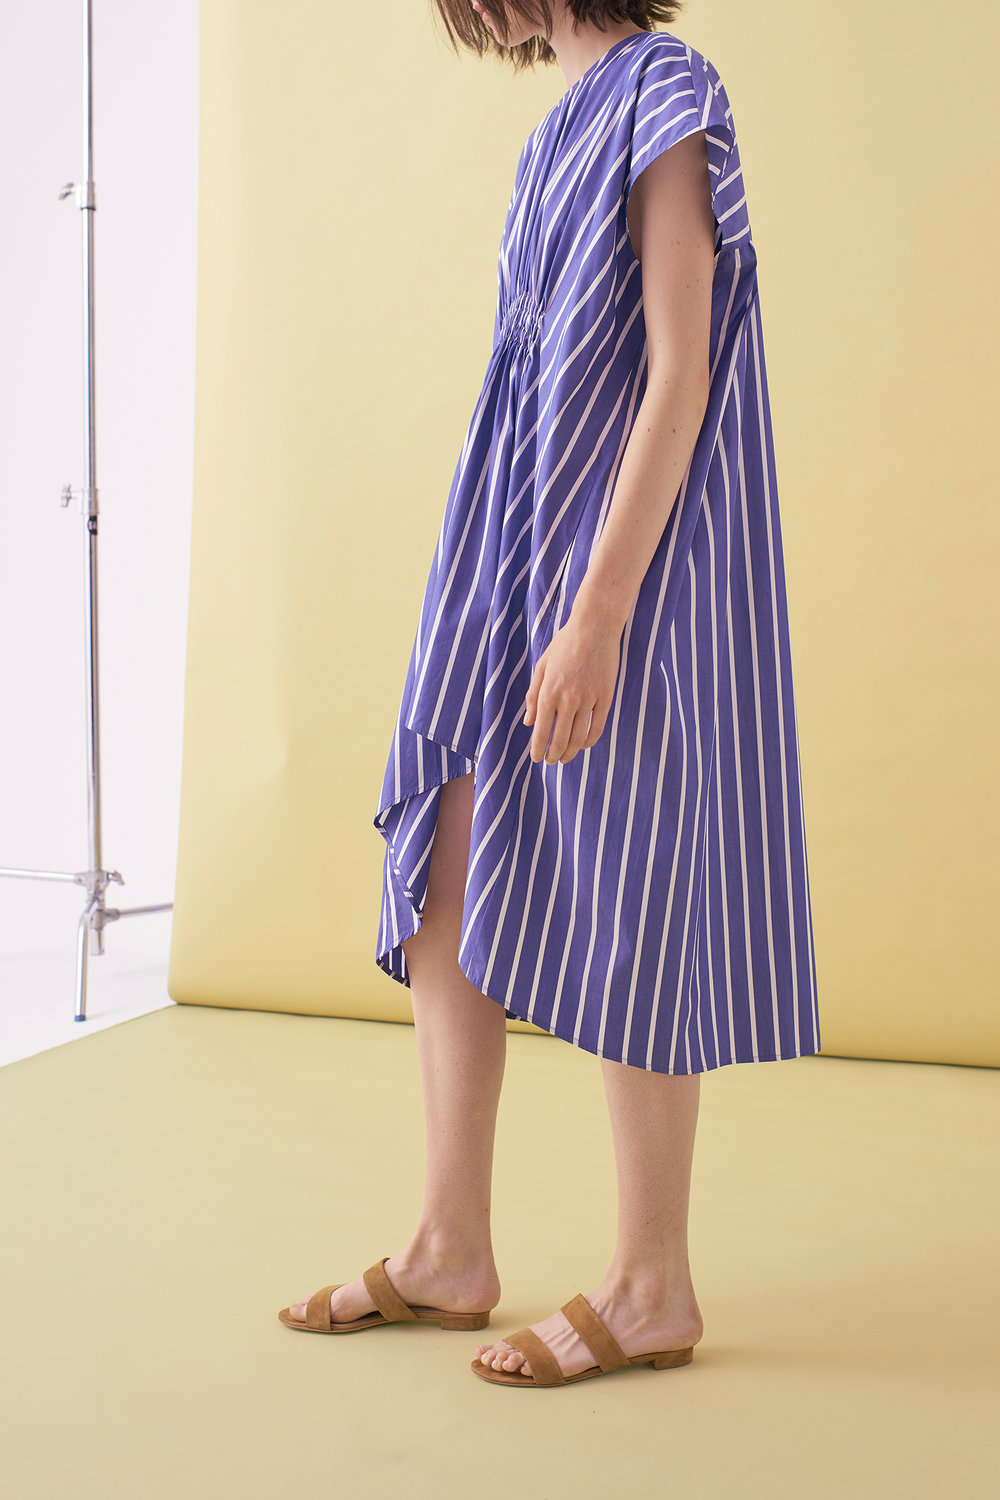 Sarah_Swann_SS17_01_Striped_Shirring_Dress_CeruleanBlue_S.jpg